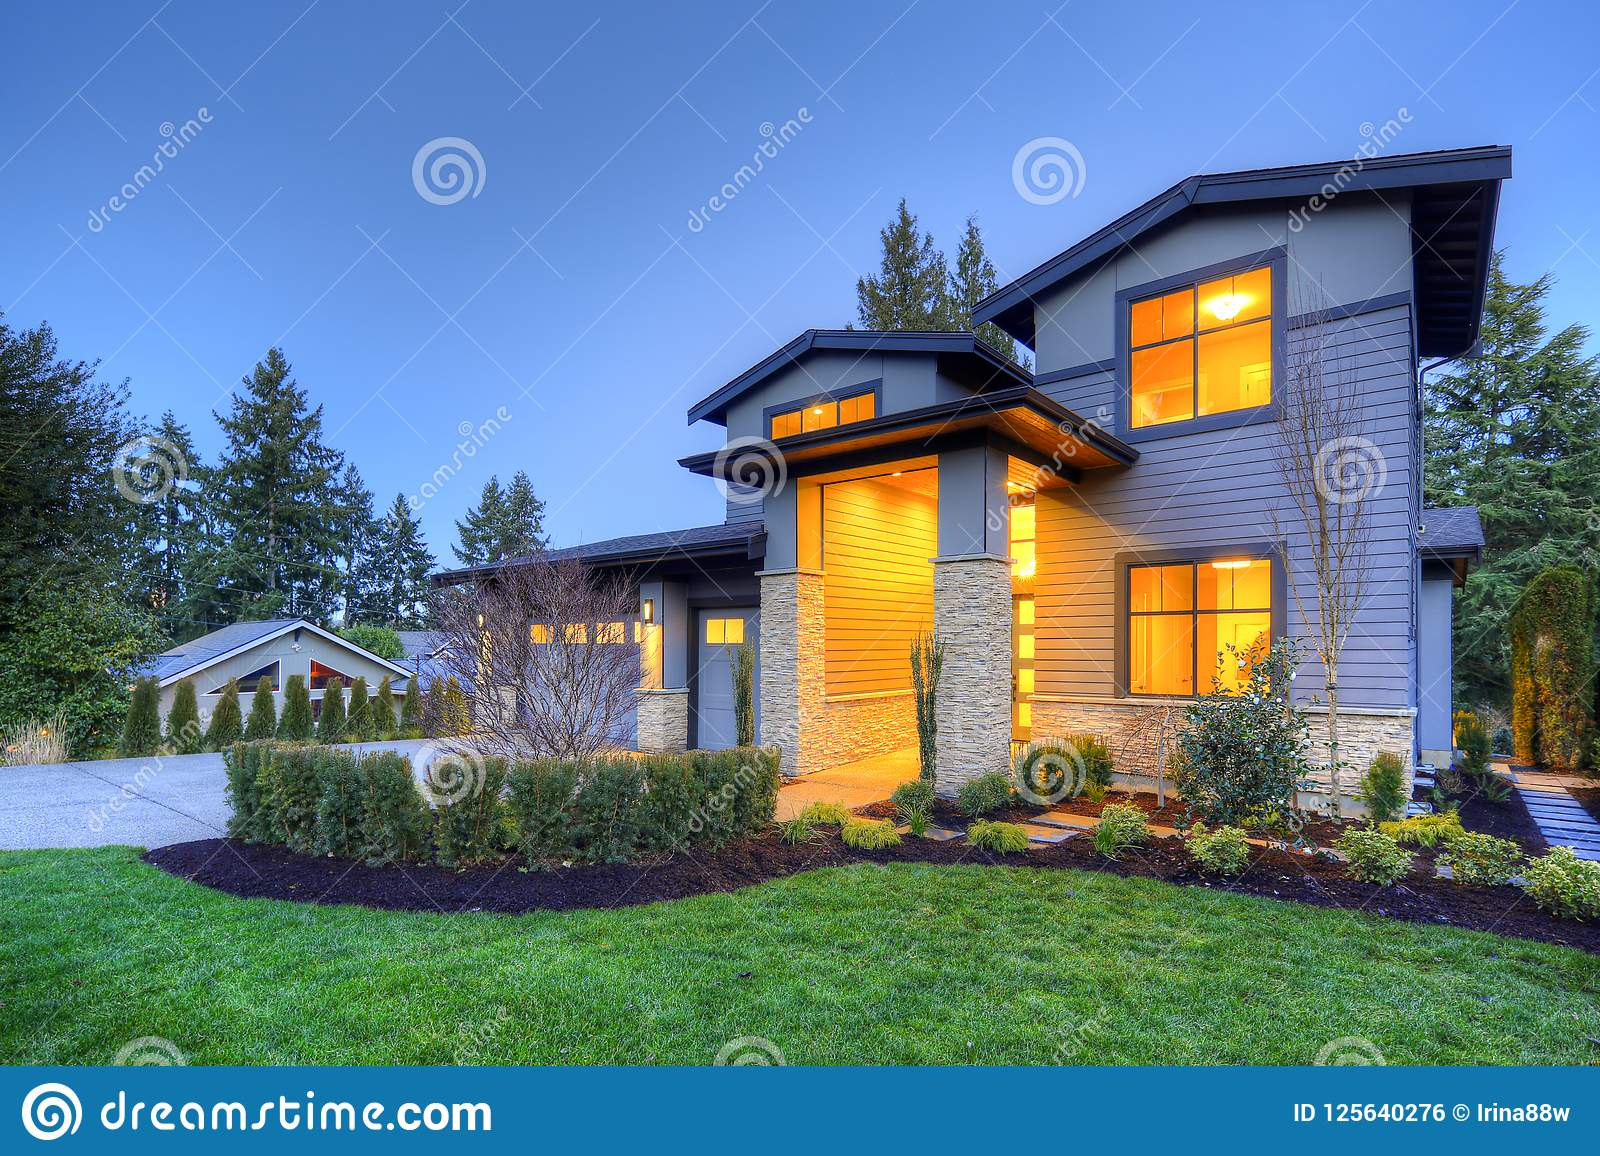 Grey Luxury Modern Two Story Tall House Exterior With Stone Columns Stock Photo Image Of Front Spring 125640276